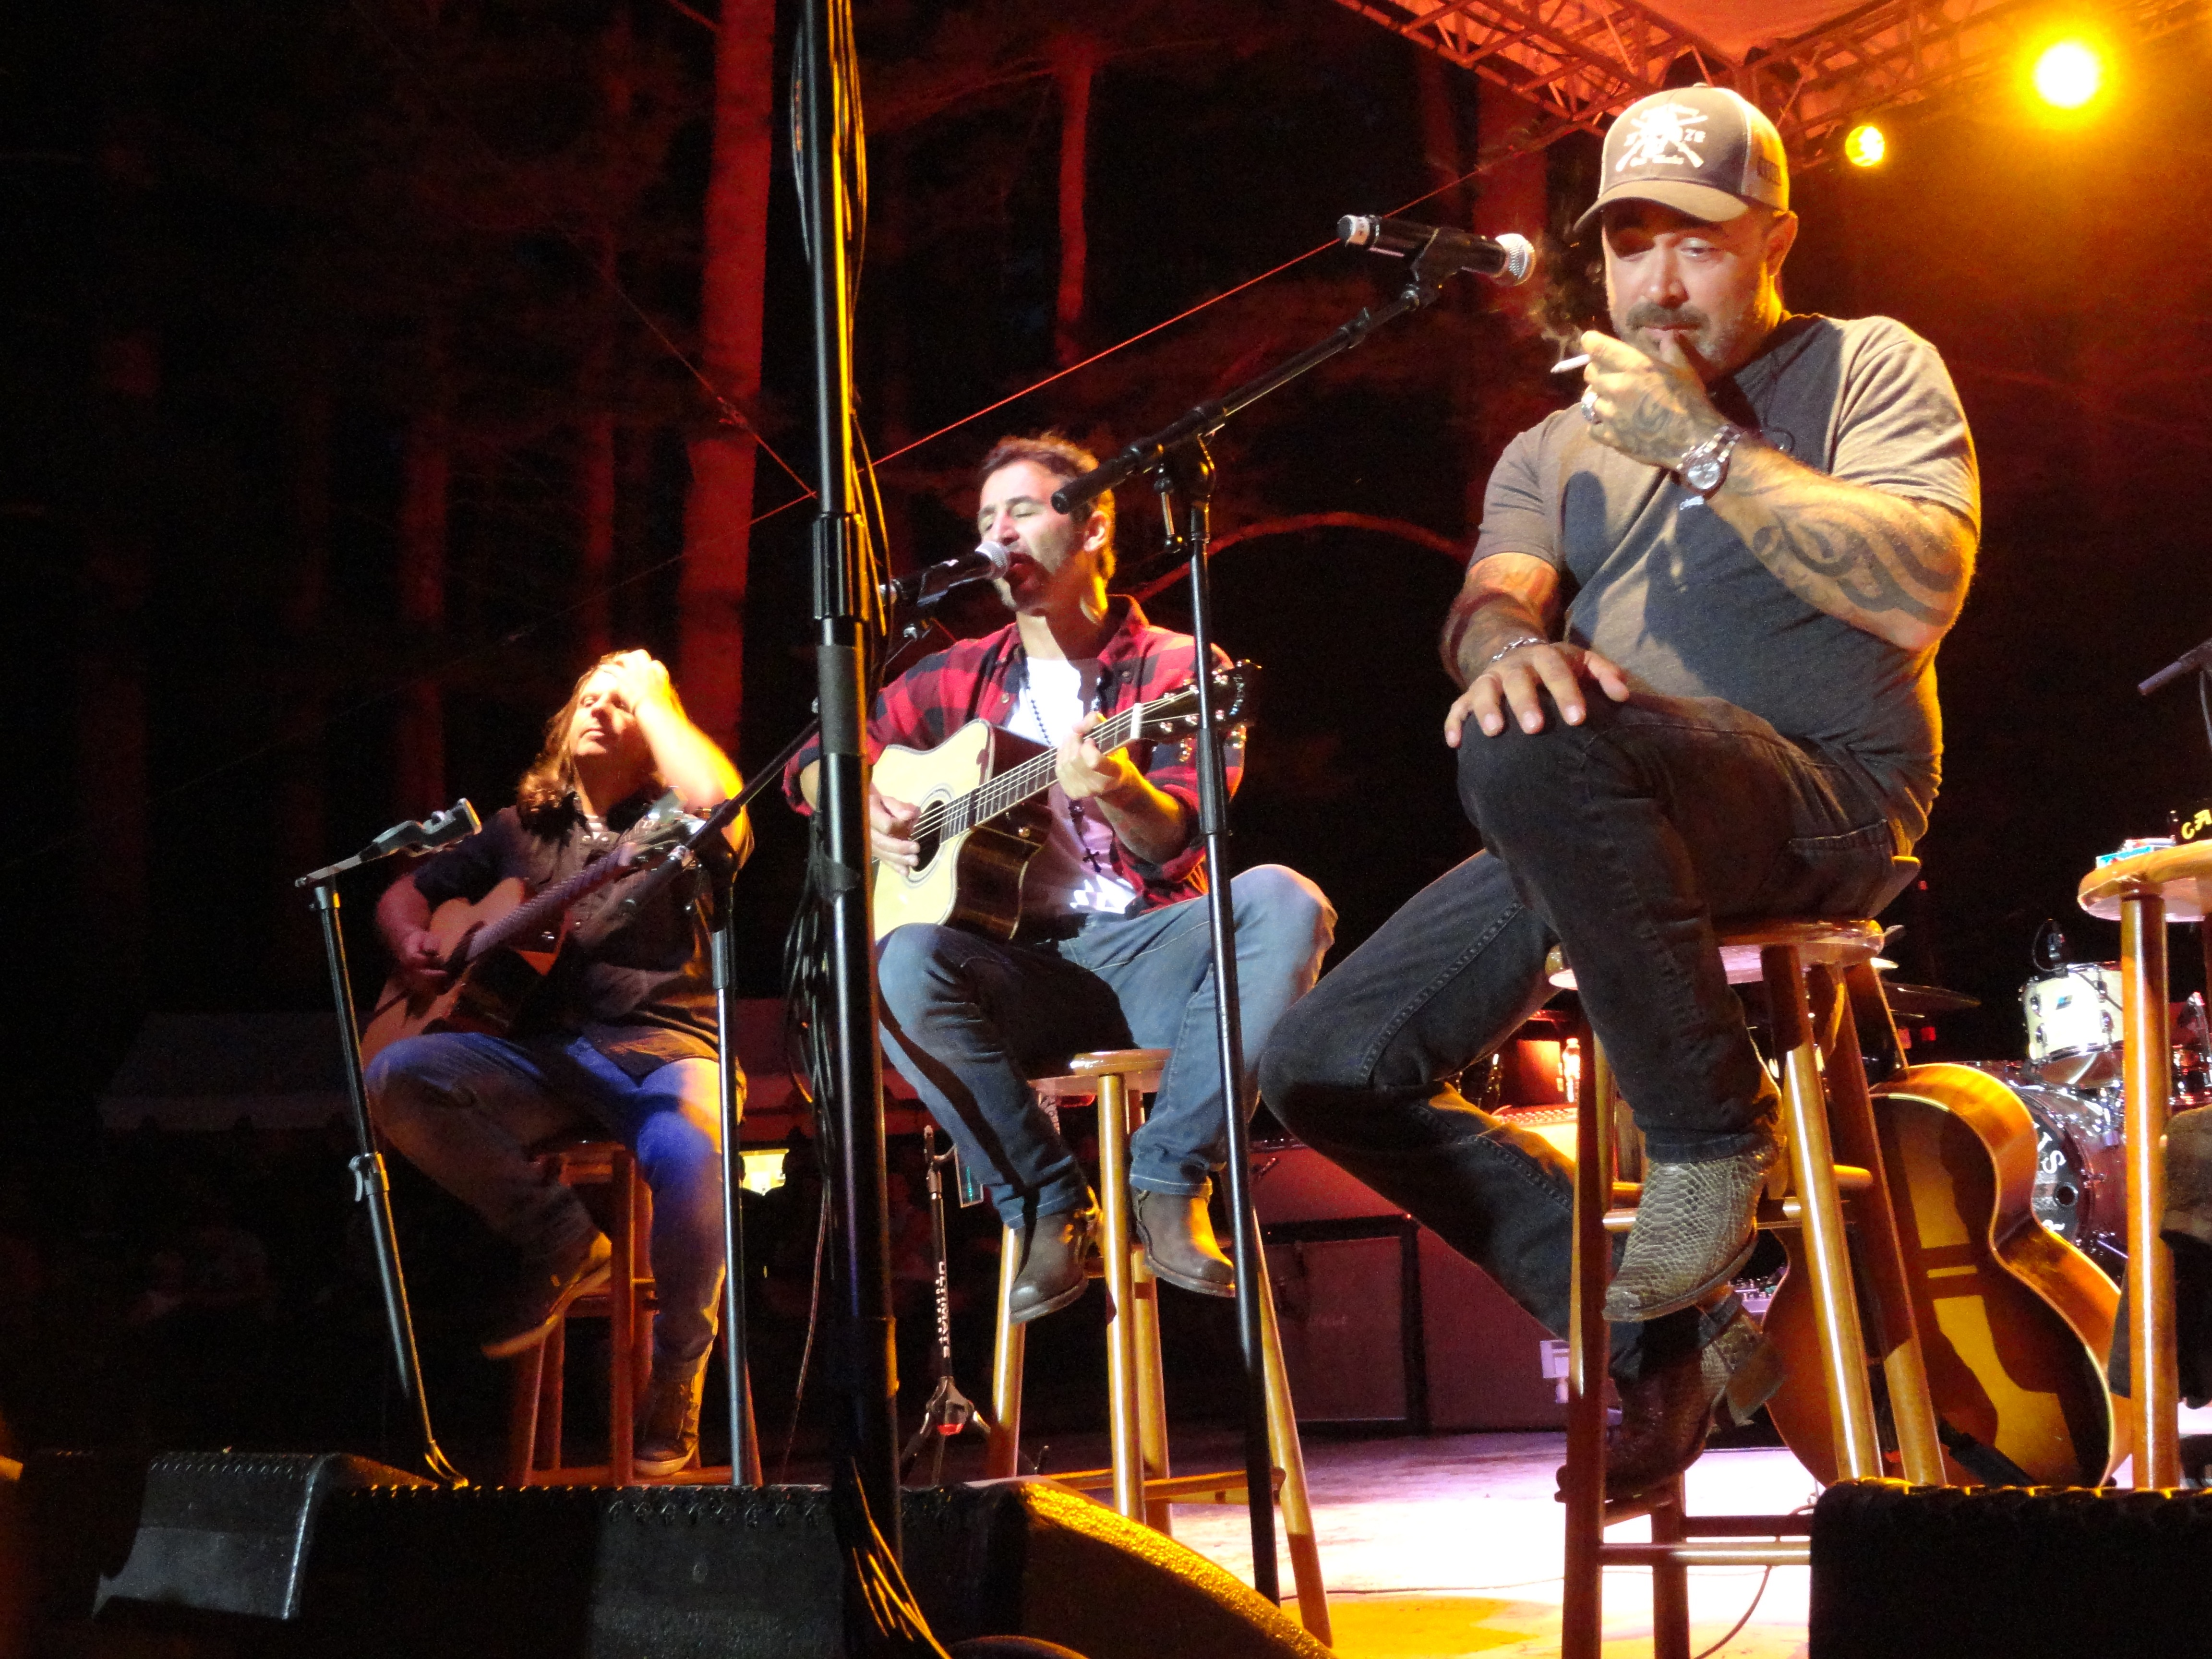 valley show girl a jam session in the forest with staind singer